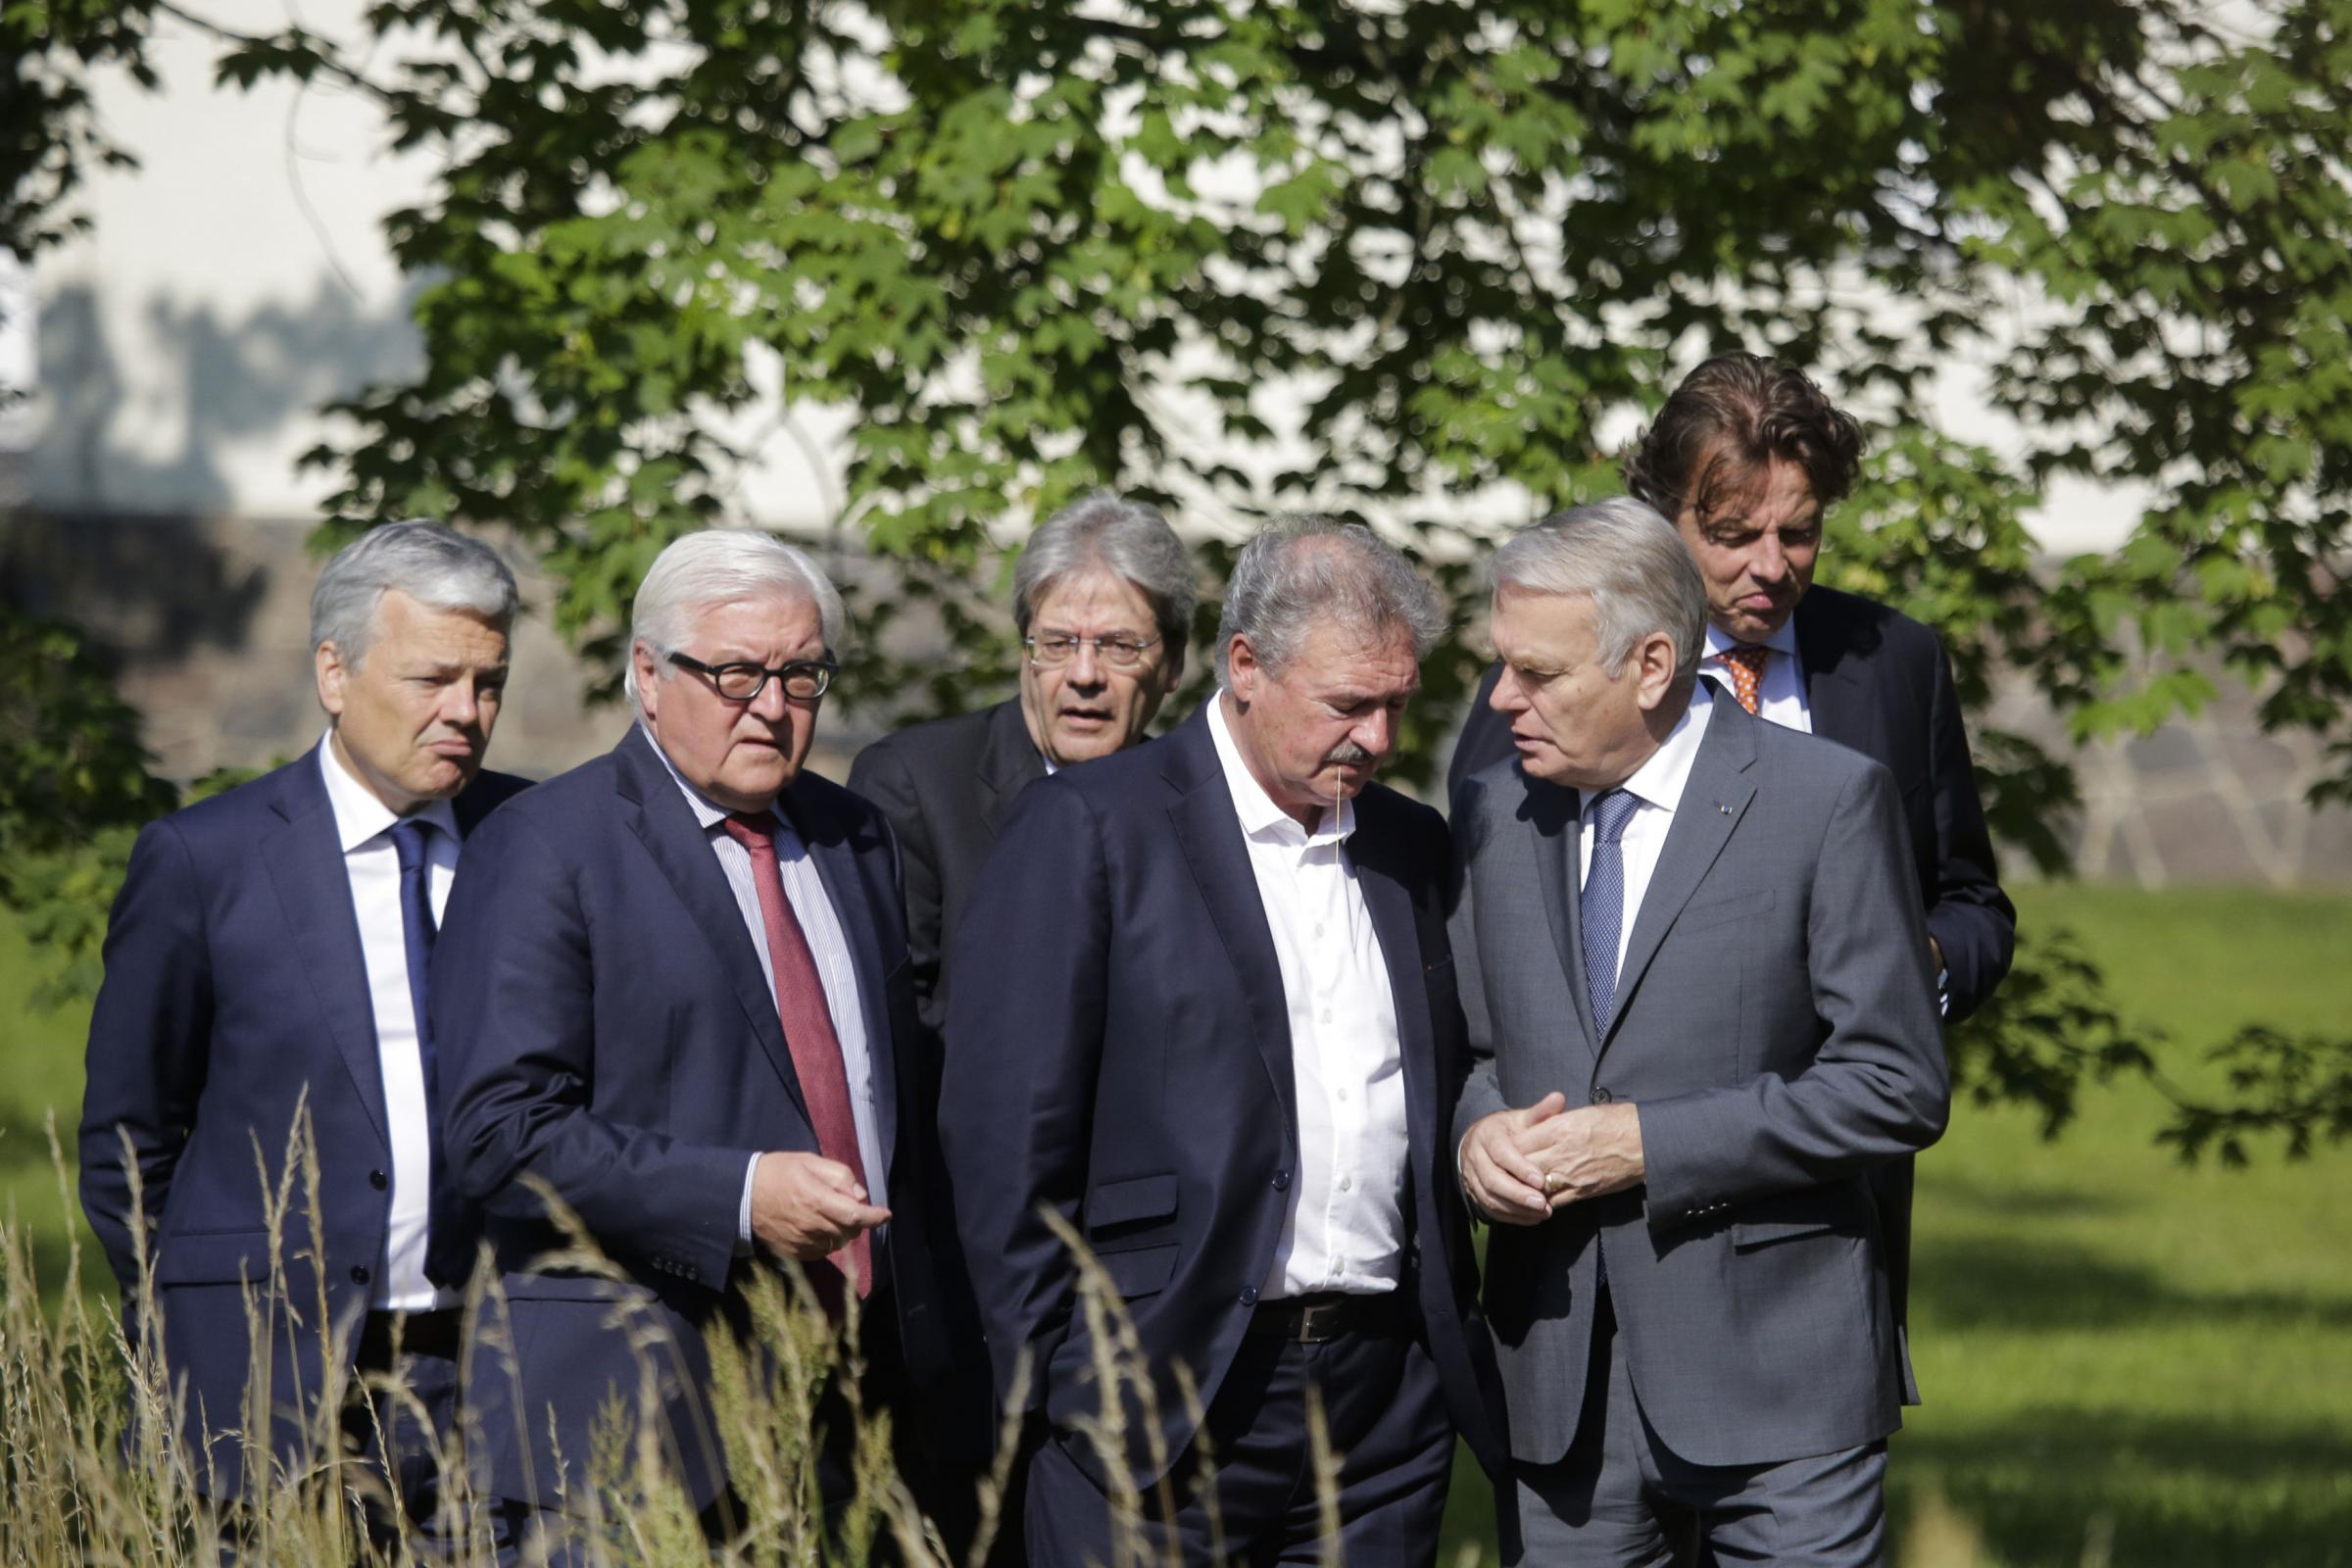 Foreign Ministers from EU's founding six, from left to right,  Didier Reynders from Belgium, Frank-Walter Steinmeier from Germany, Paolo Gentiloni from Italy, Jean Asselborn from Luxembourg, Jean-Marc Ayrault from France and Bert Koenders from the Net